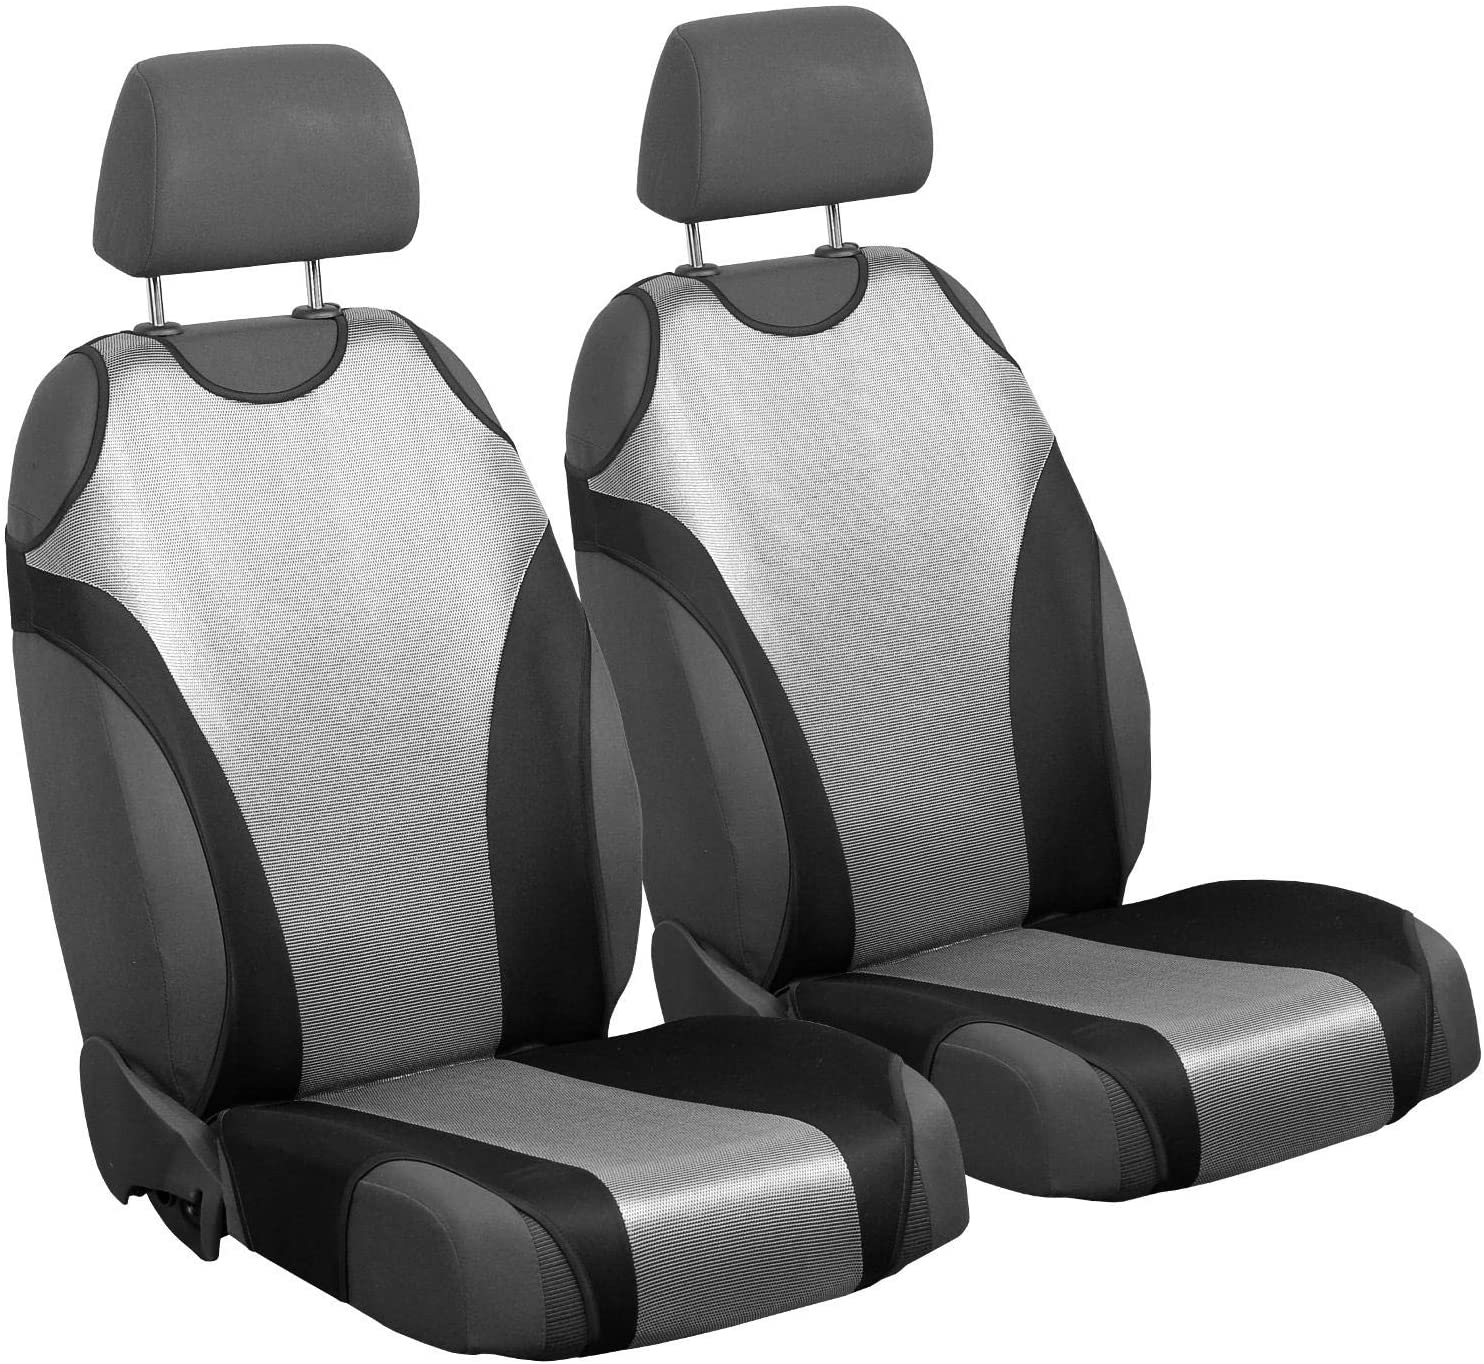 Zakschneider Car Seat Covers for Veloster - Front Seats - Color Premium Silver & Black